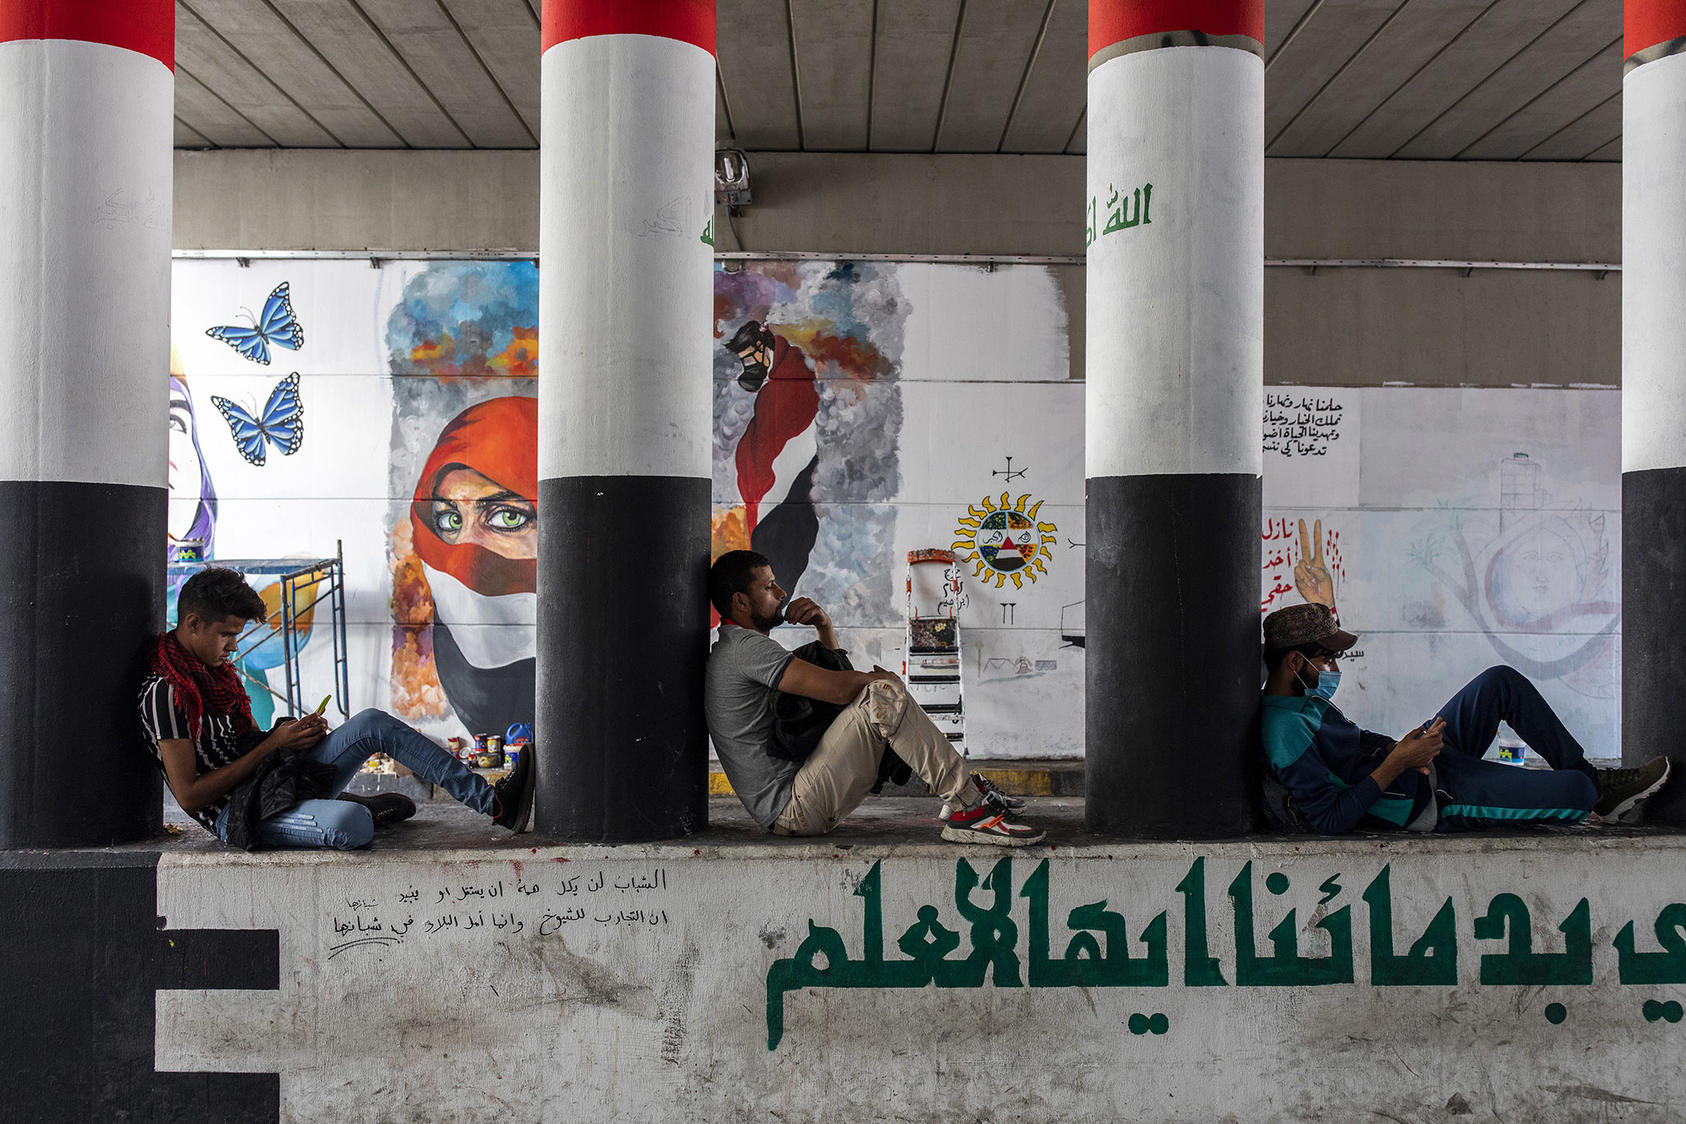 Antigovernment protesters sit in front of murals in Baghdad on Nov. 22, 2019.  (Ivor Prickett/The New York Times)